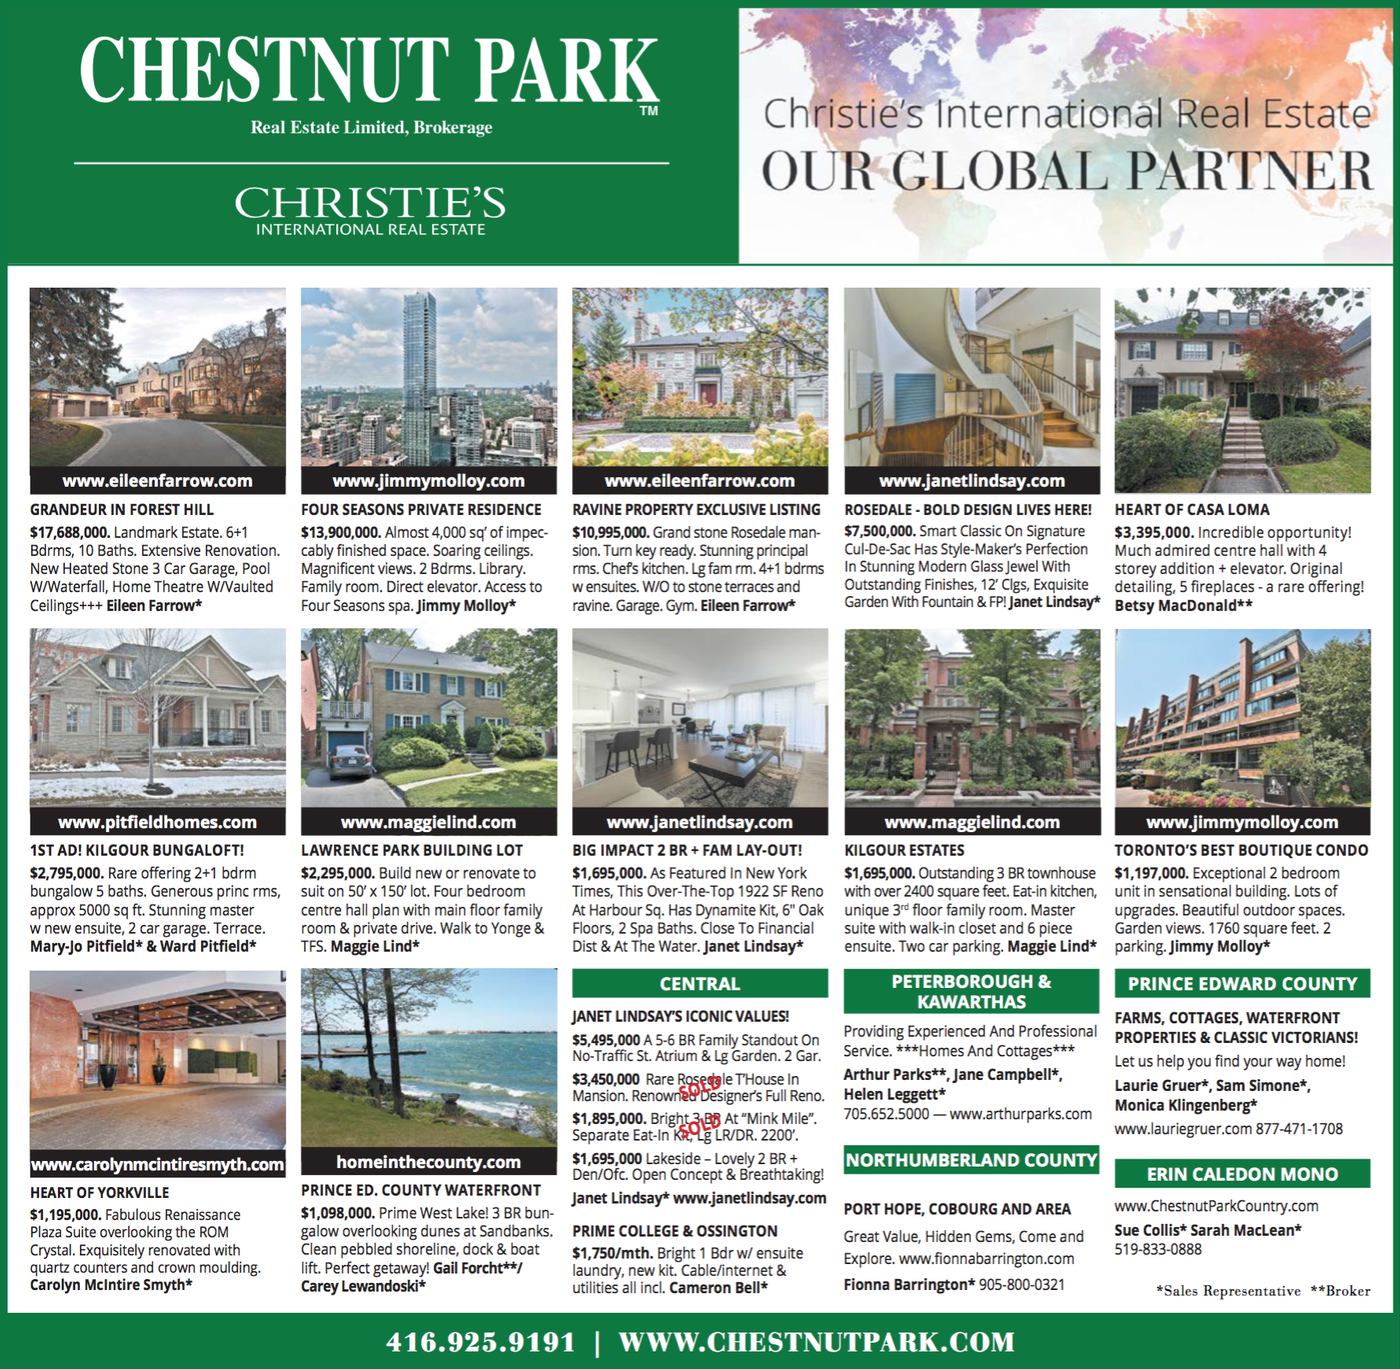 Chestnut Park In Print | Week of February 9th - Debbie Penzo